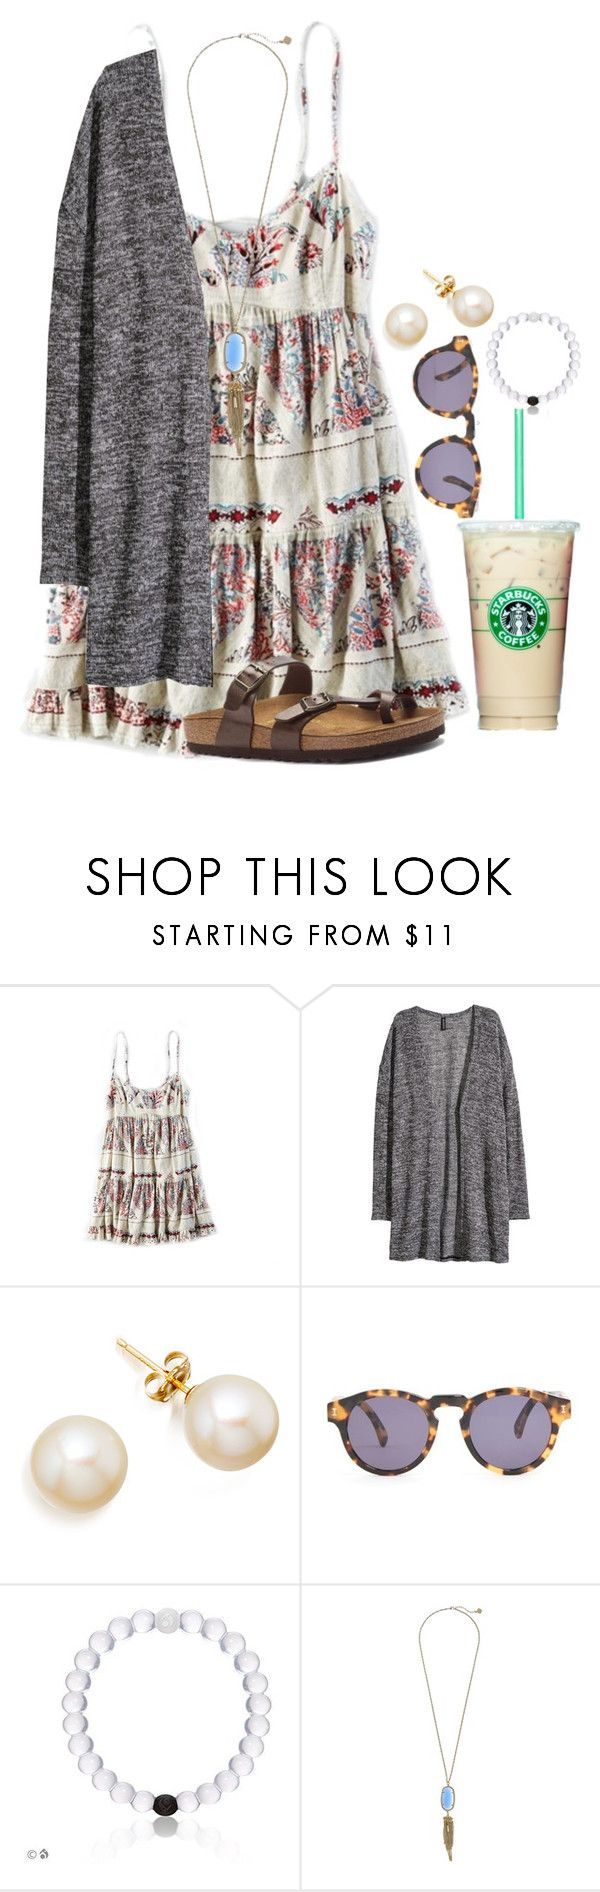 """""""I almost have this whole outfit, minus the necklace"""" by flroasburn ❤ liked on Polyvore featuring American Eagle Outfitters, H&M, Illesteva, Kendra Scott and Birkenstock"""